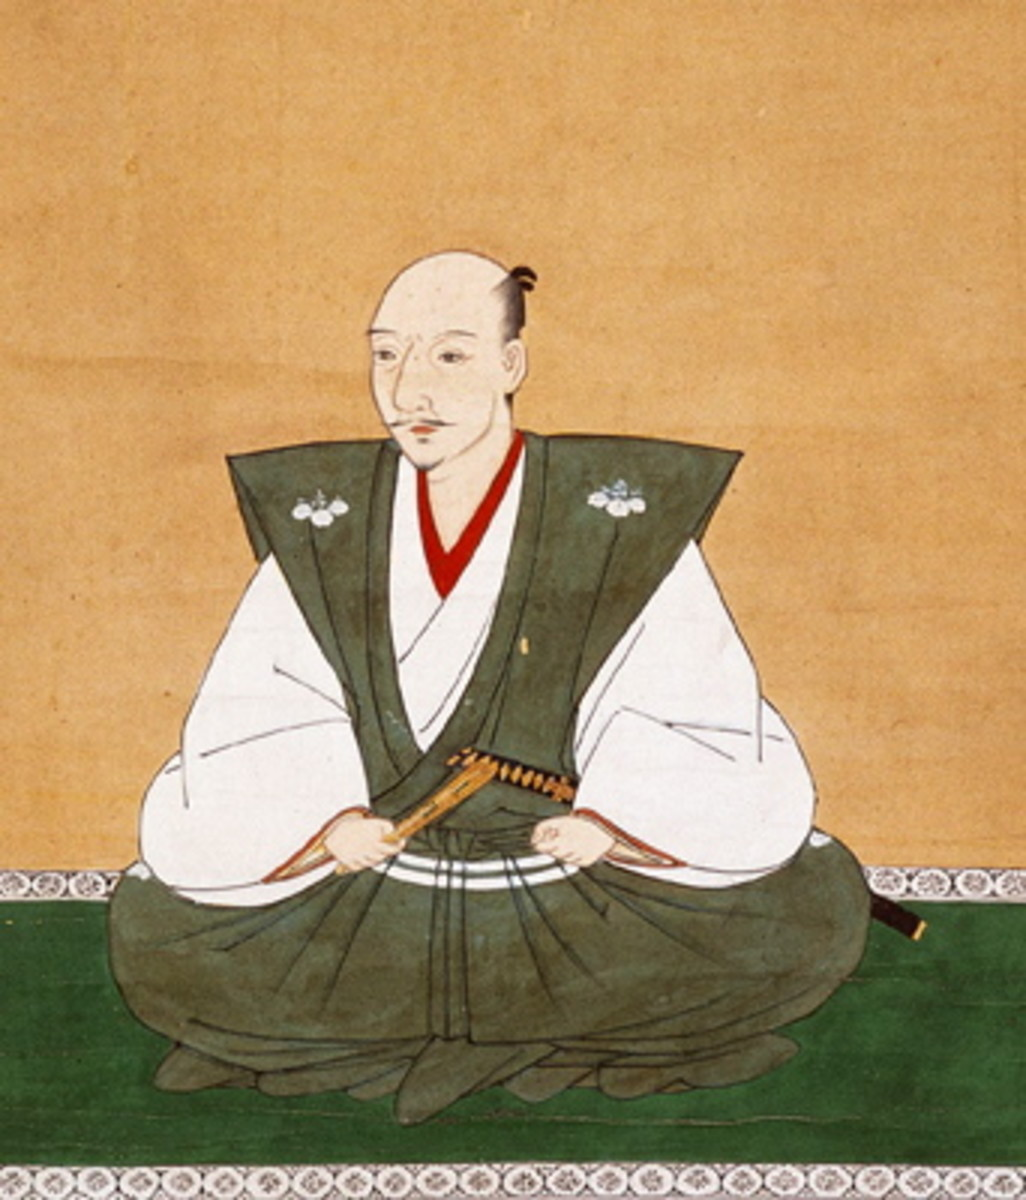 Oda Nobunaga, a famous Muromachi Period warlord, painted here wearing a kataginu, the decorative successor to the hitatare. The stiff fabric makes the shoulders stand up; in later centuries, the shoulders will grow wider and require boning to stand.